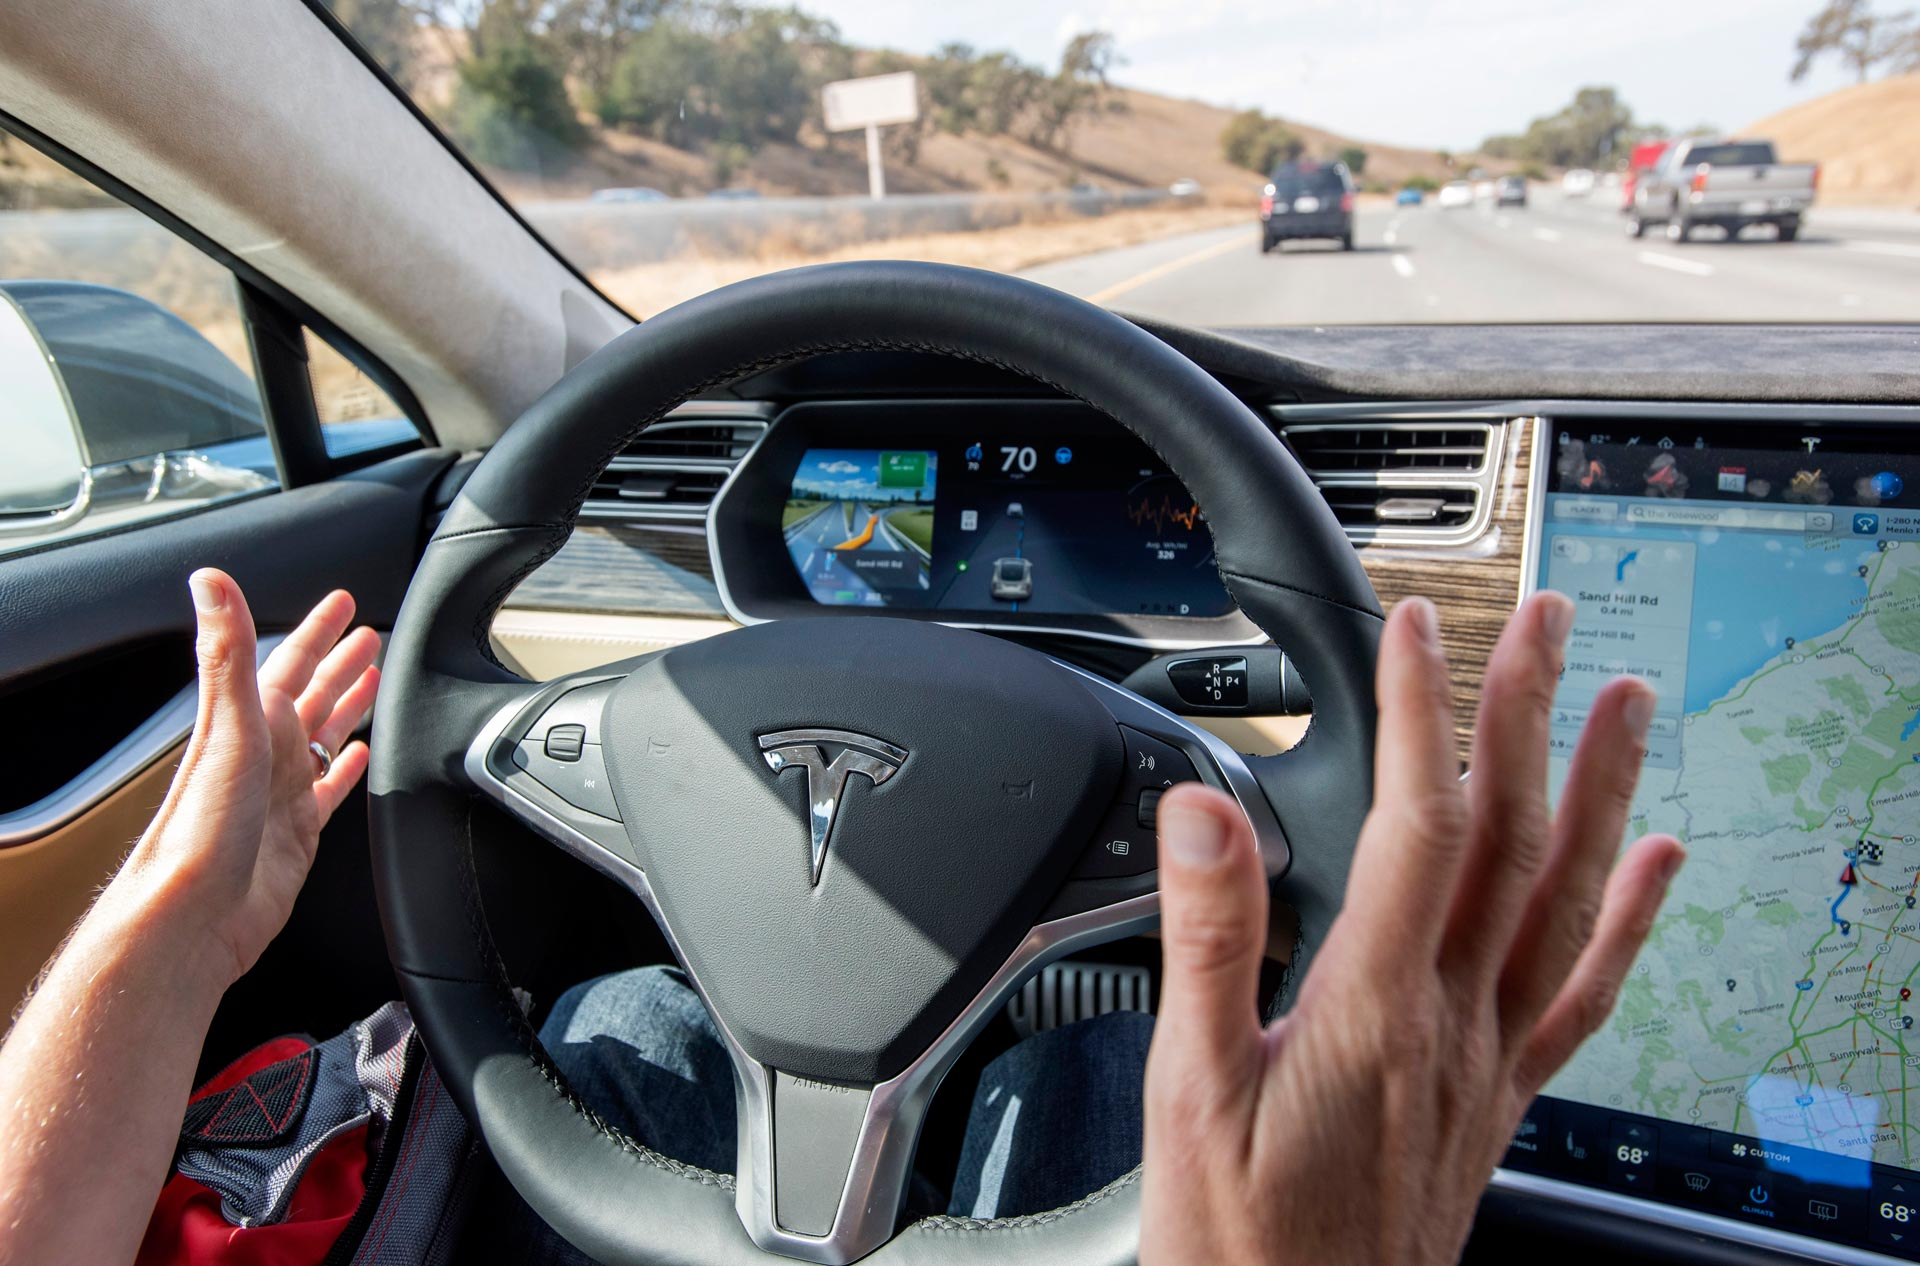 A member of the media test drives a Tesla Model S car equipped with Autopilot. Tesla is the largest seller of electric vehicles in the nation.